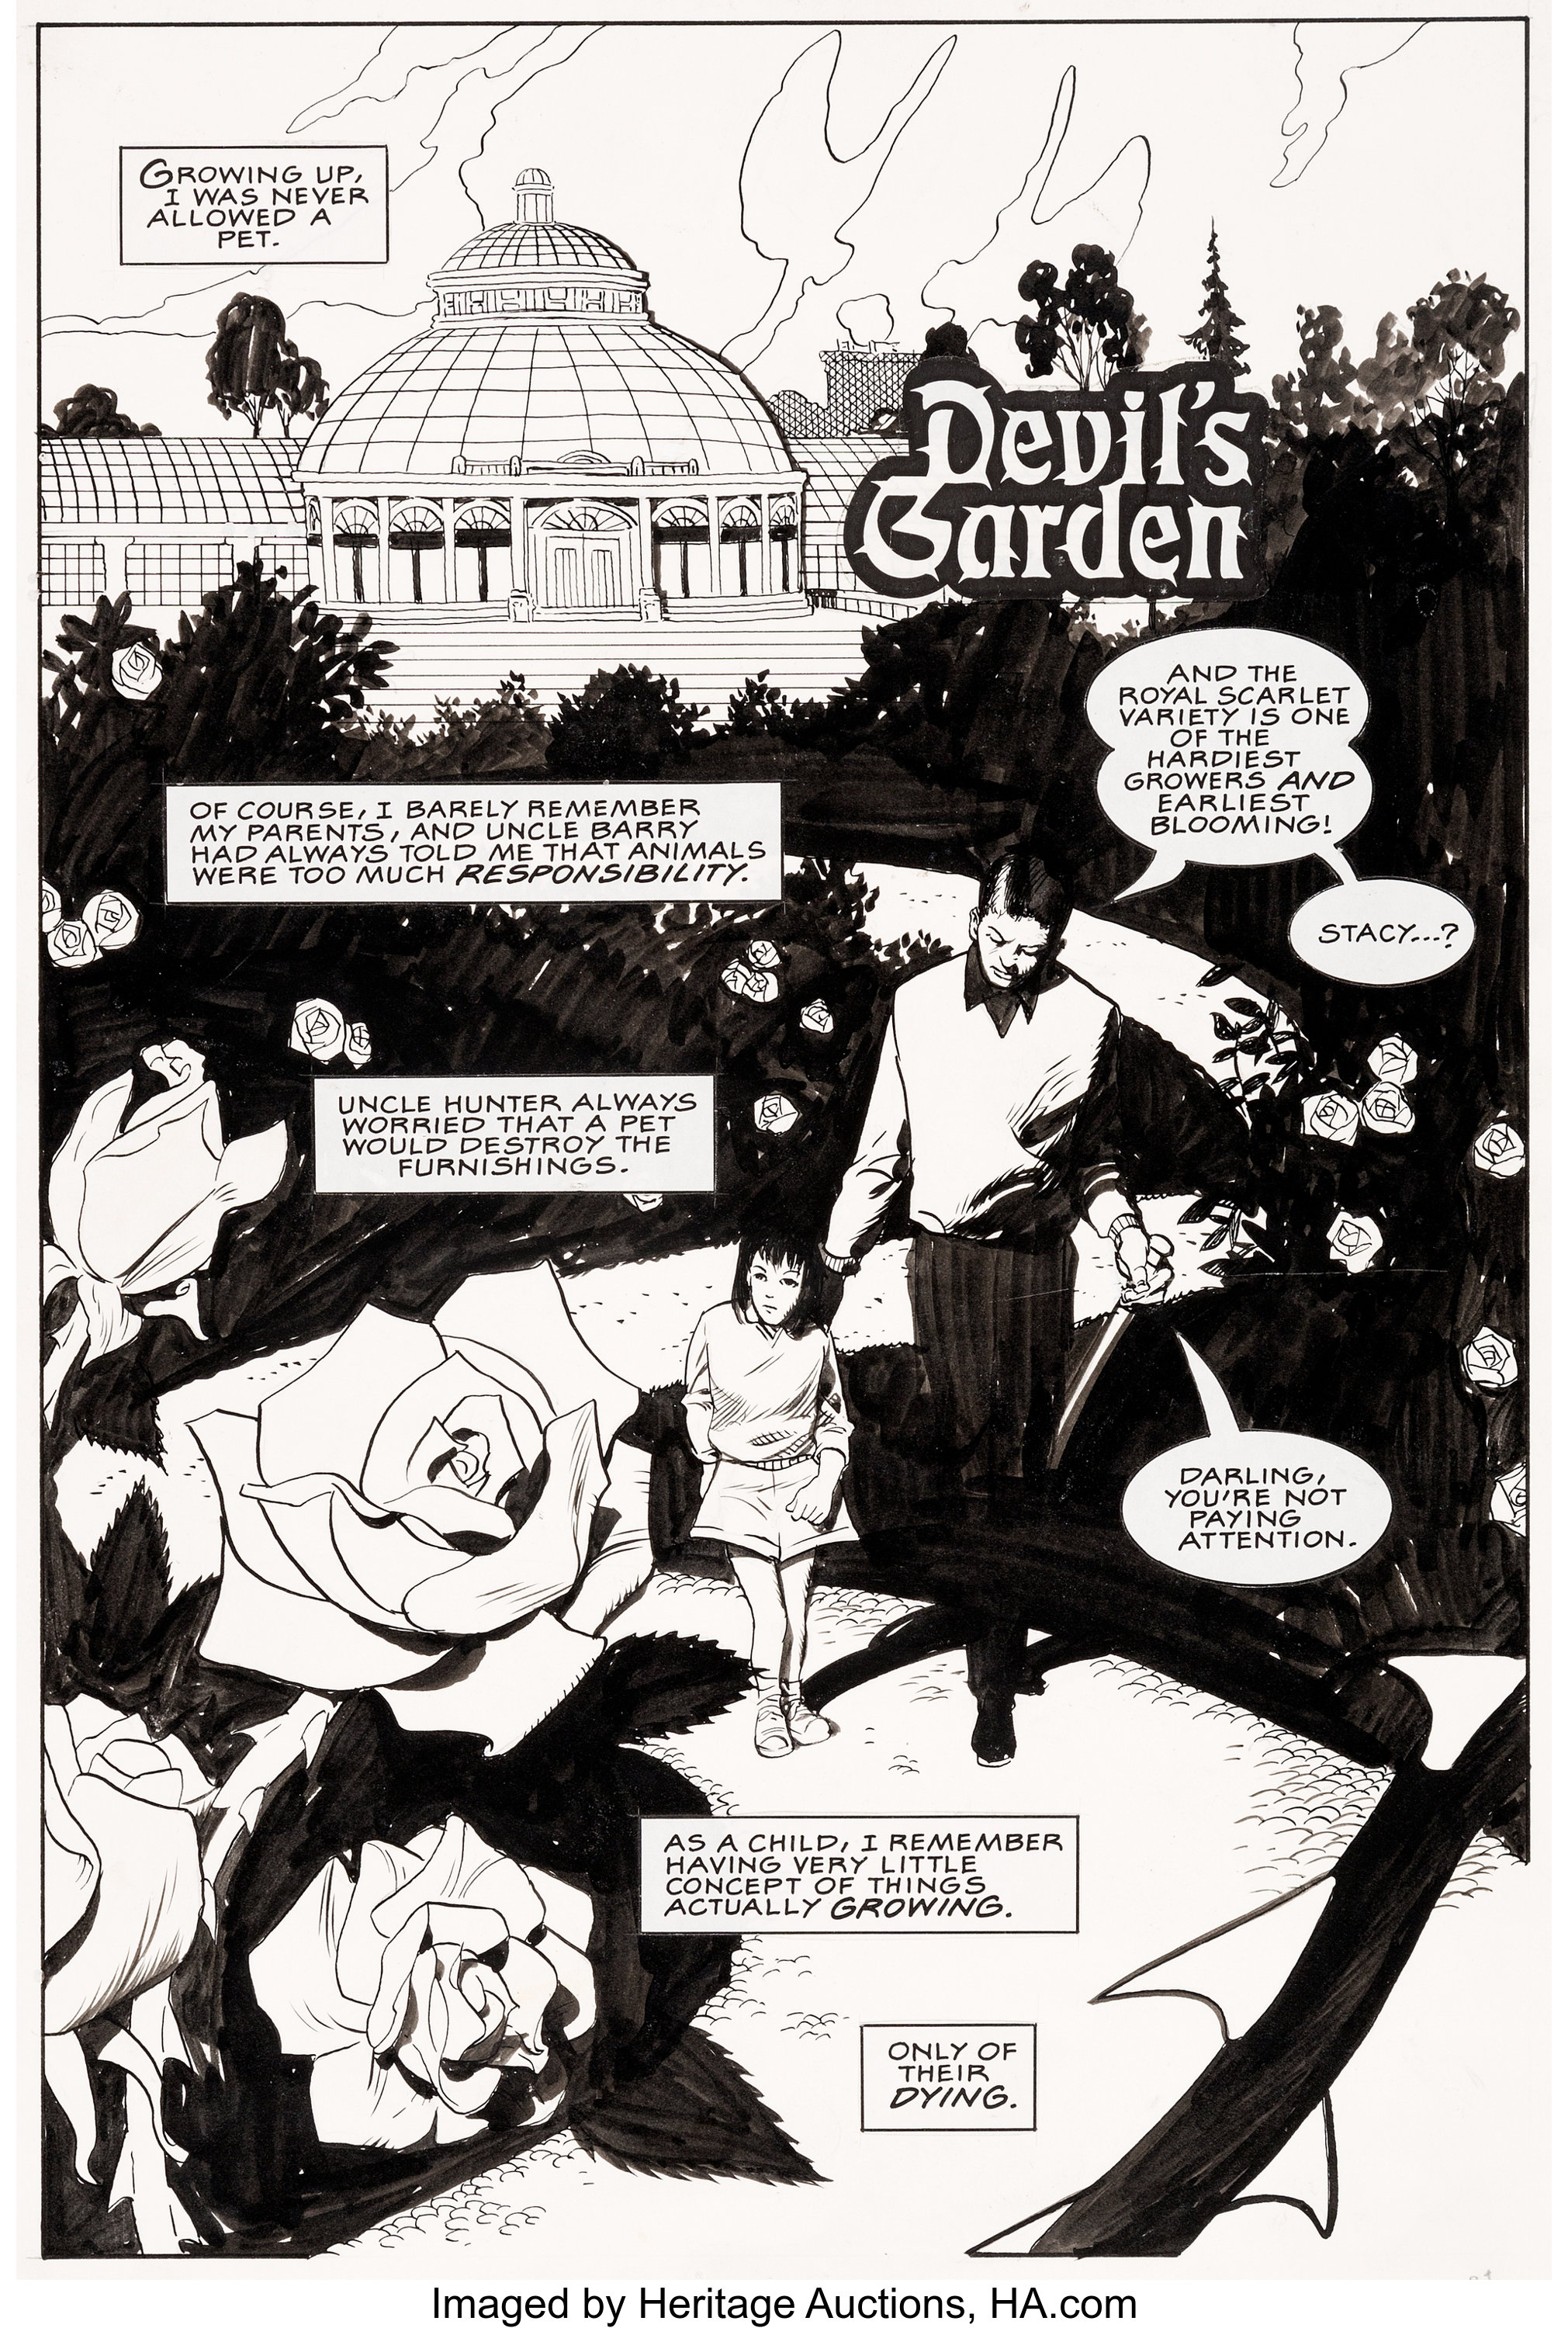 Paul Chadwick Grendel Black White And Red 2 Complete 8 Page Lot 95053 Heritage Auctions